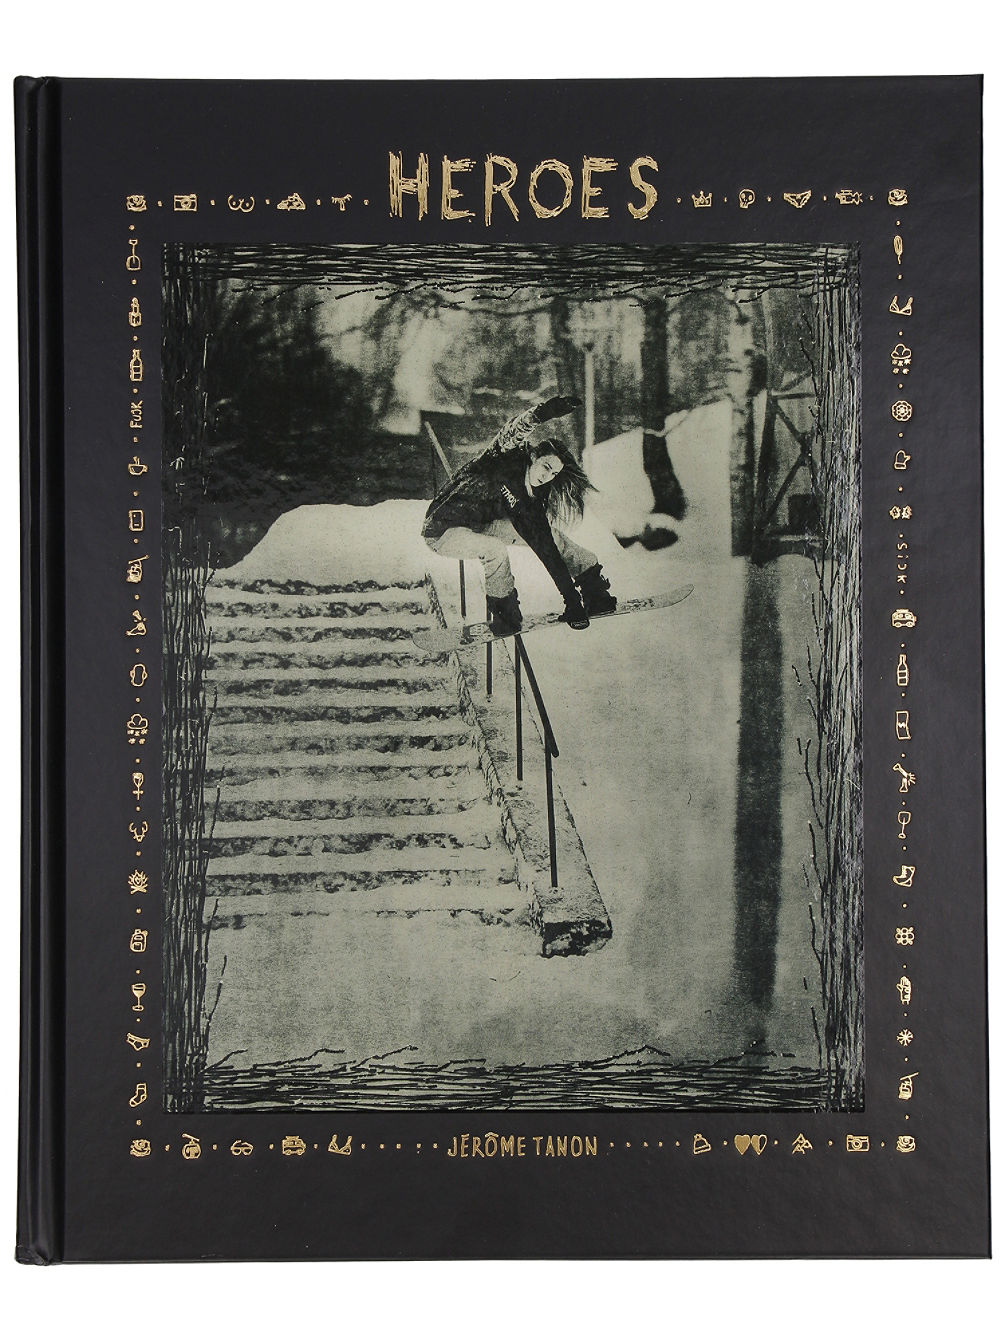 Heroes - Women in Snowboarding Book